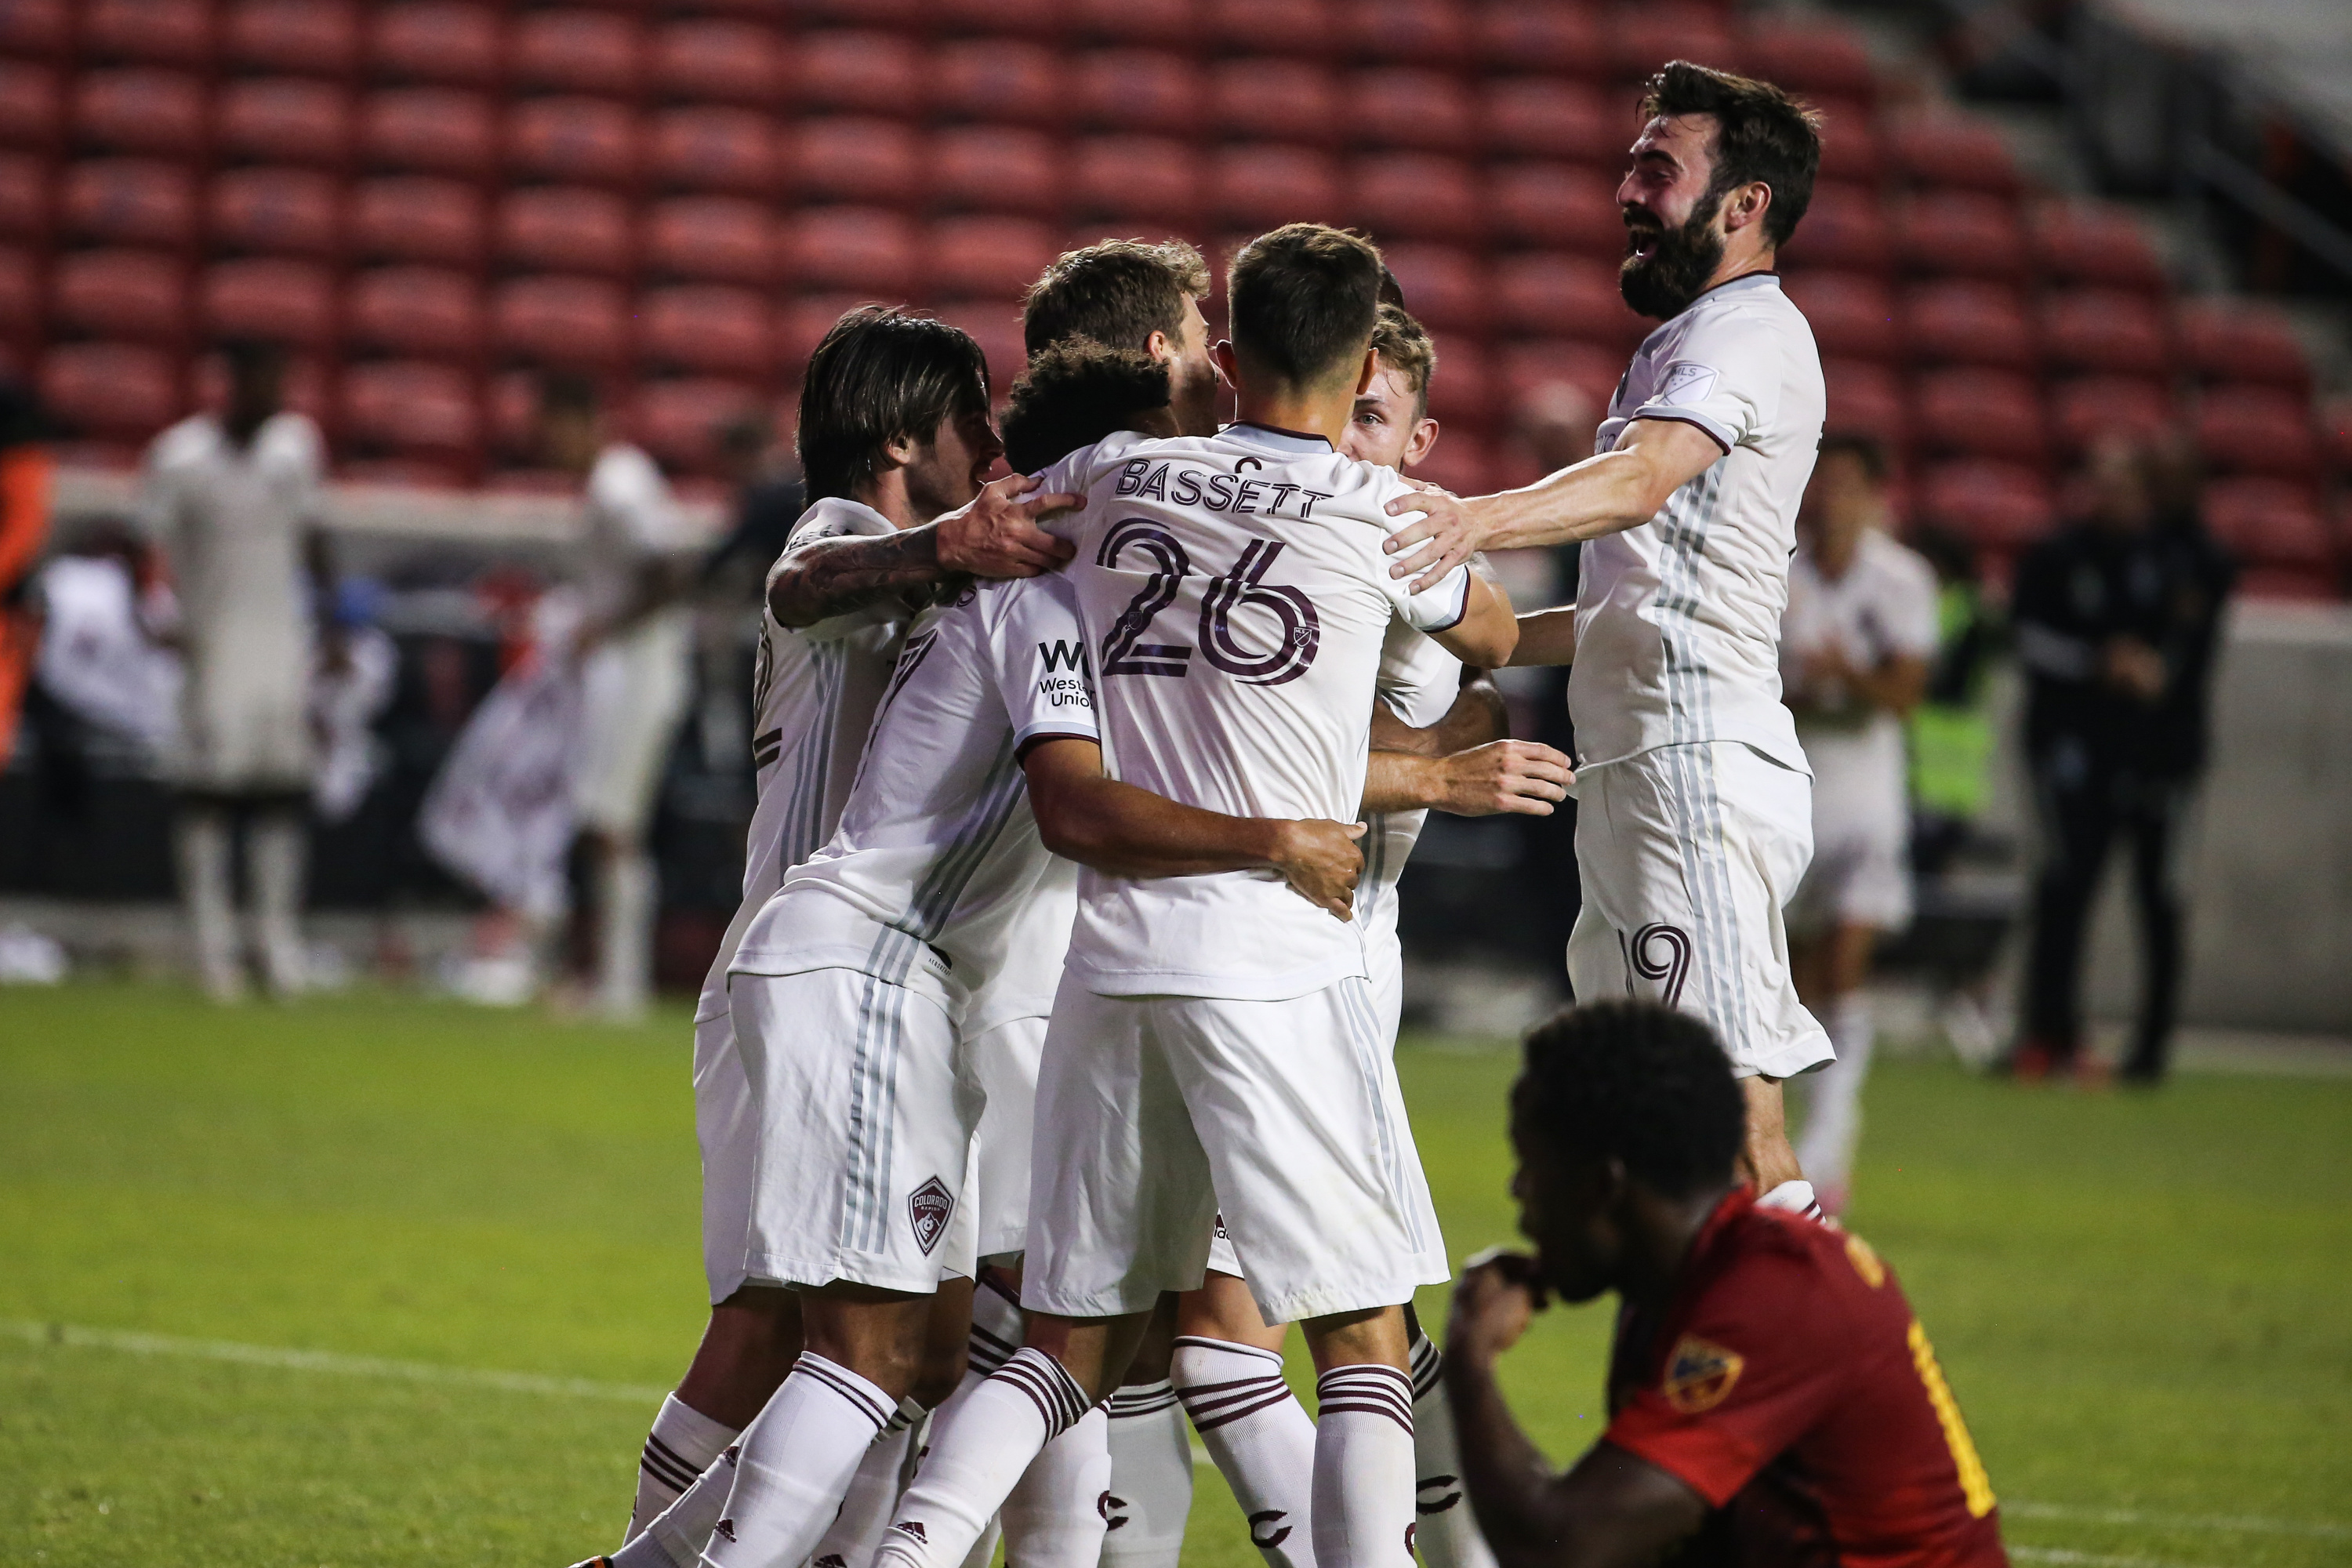 Colorado Rapids players celebrates their fifth team goal scored by midfielder Cole Bassett (26) during an MLS soccer game at Rio Tinto Stadium in Sandy on Saturday, Sept. 12, 2020.